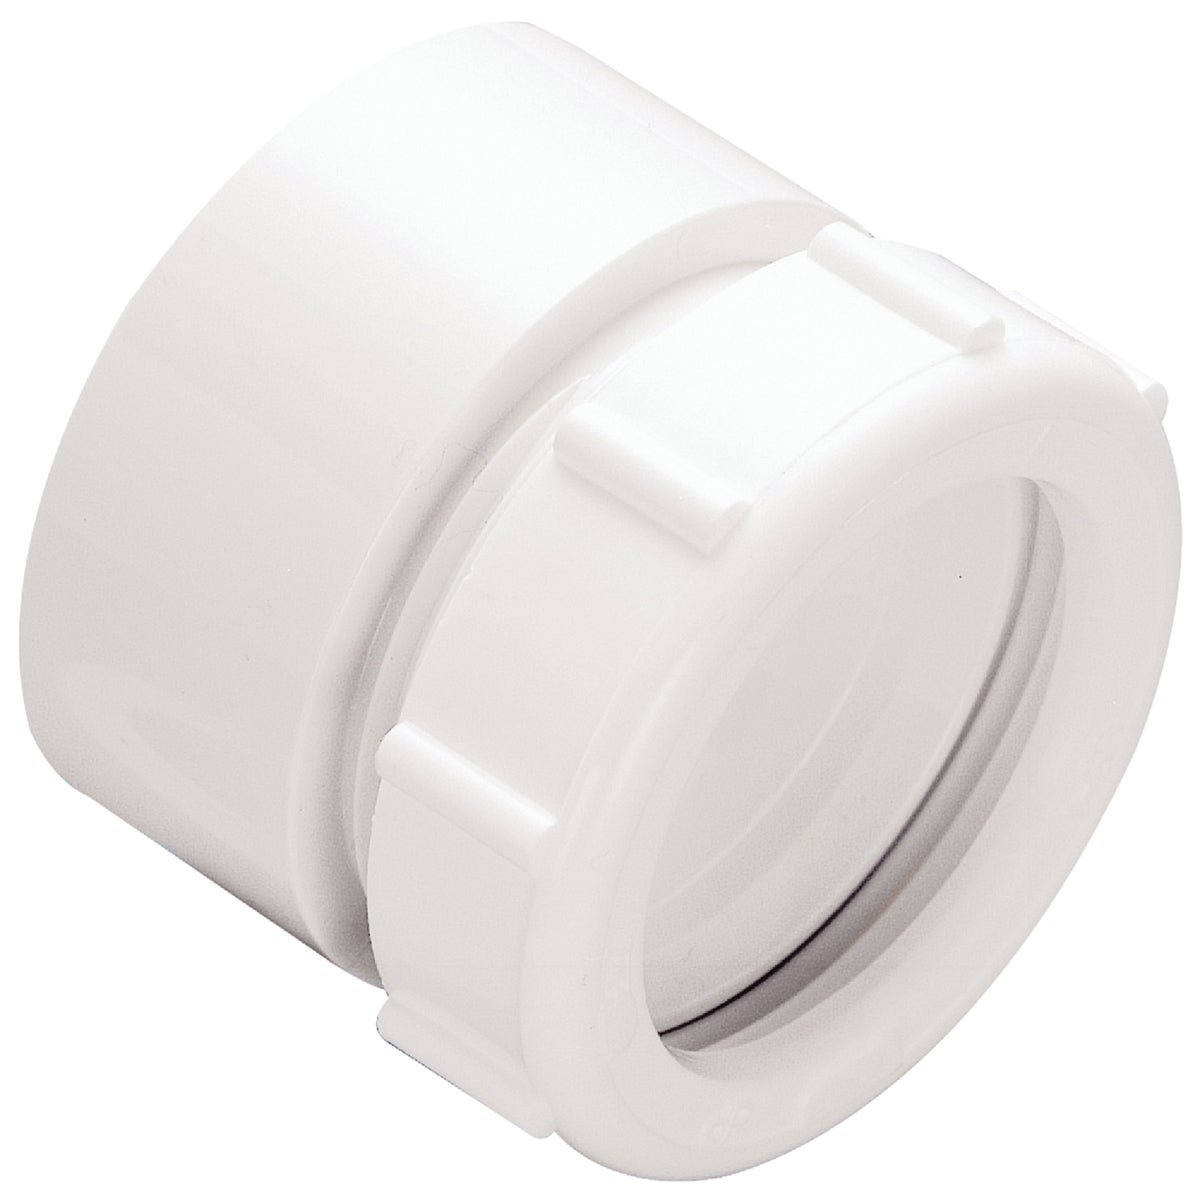 "1-1/2"" PVC TRAP ADAPTER - 416071 by Plumb Pak/keeney Mfg"